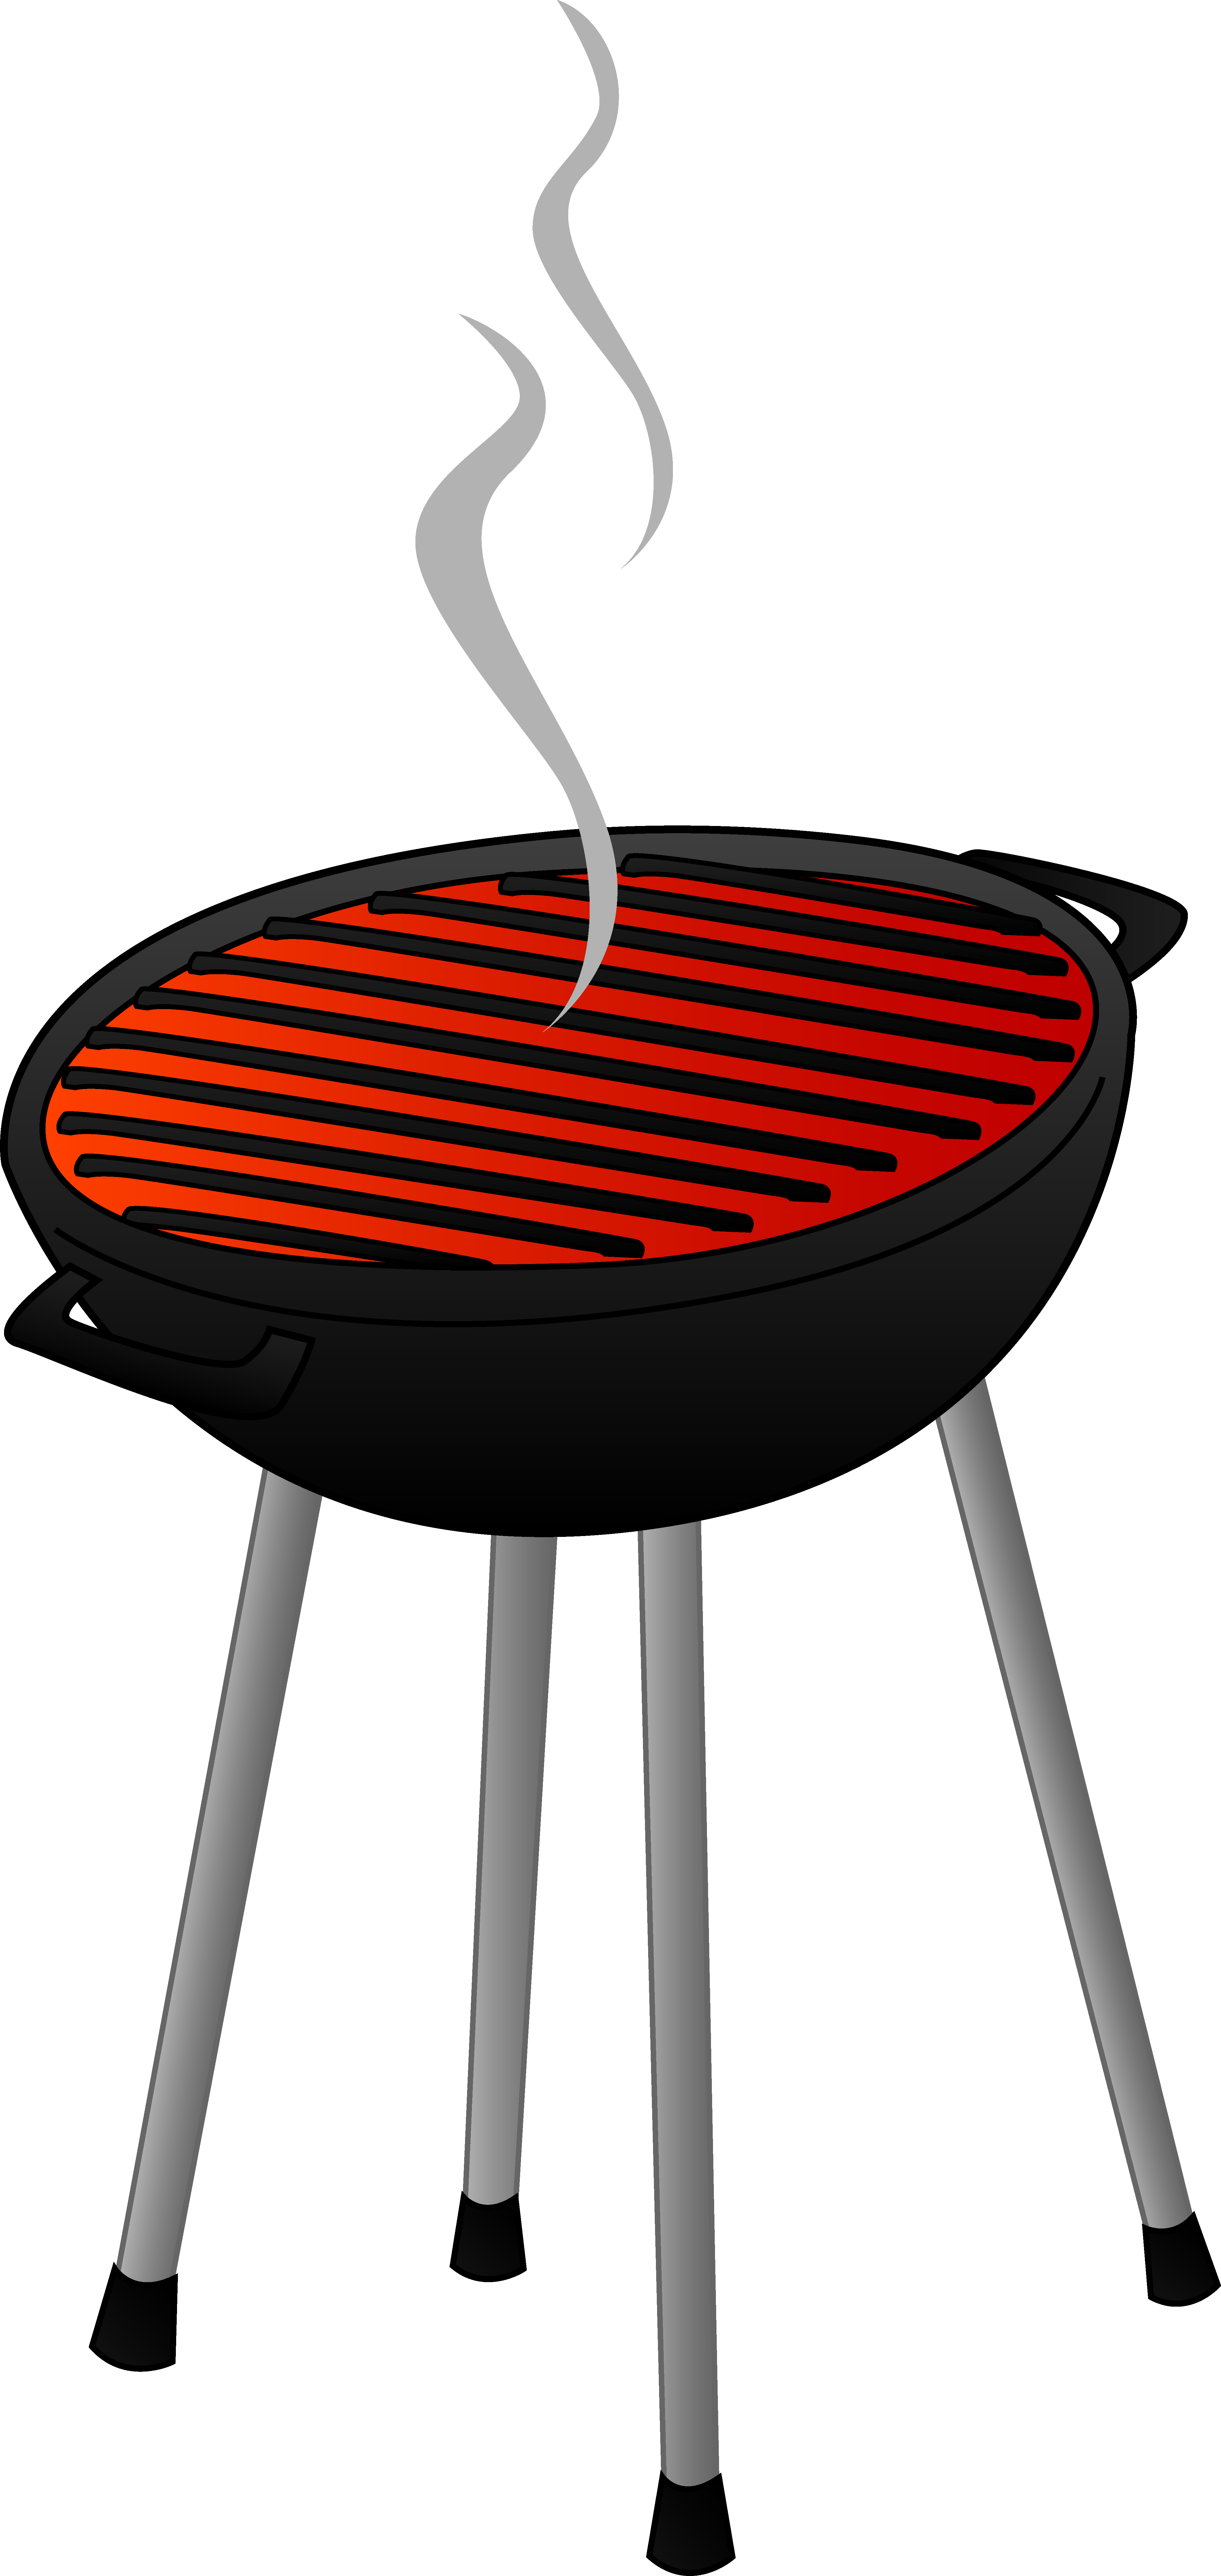 Clipart bbq grill vector library stock 19+ Clip Art Grill | ClipartLook vector library stock